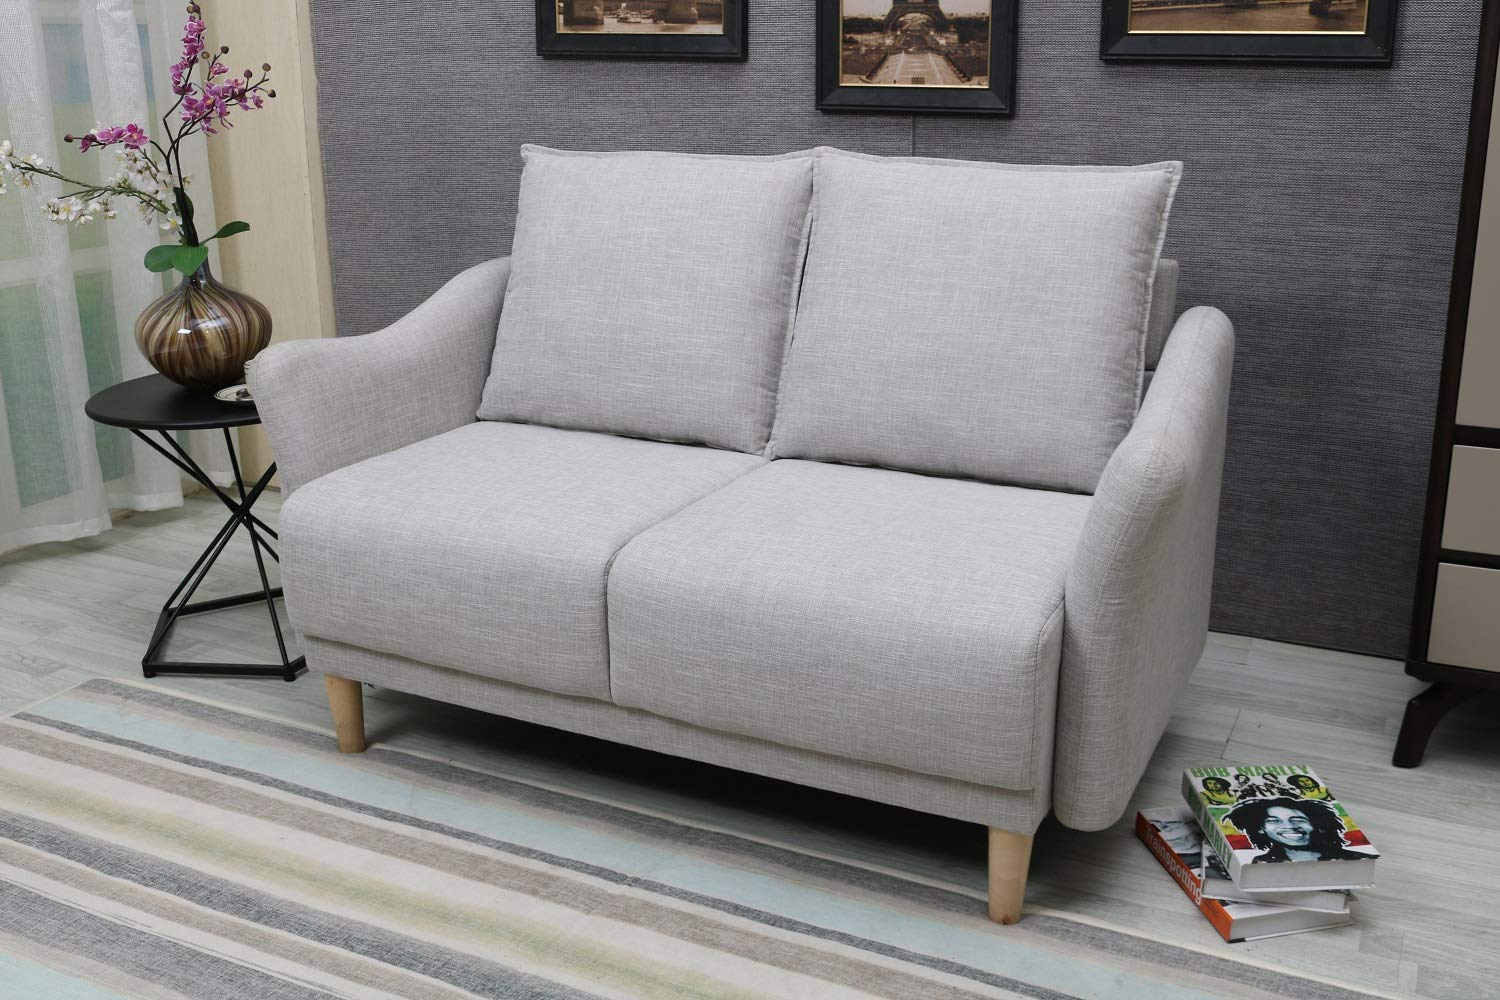 Remarkable Best Living Furniture Modern Sofa 2 Seater Love Seat With With Terylene Velvet Fabric Beige Bralicious Painted Fabric Chair Ideas Braliciousco